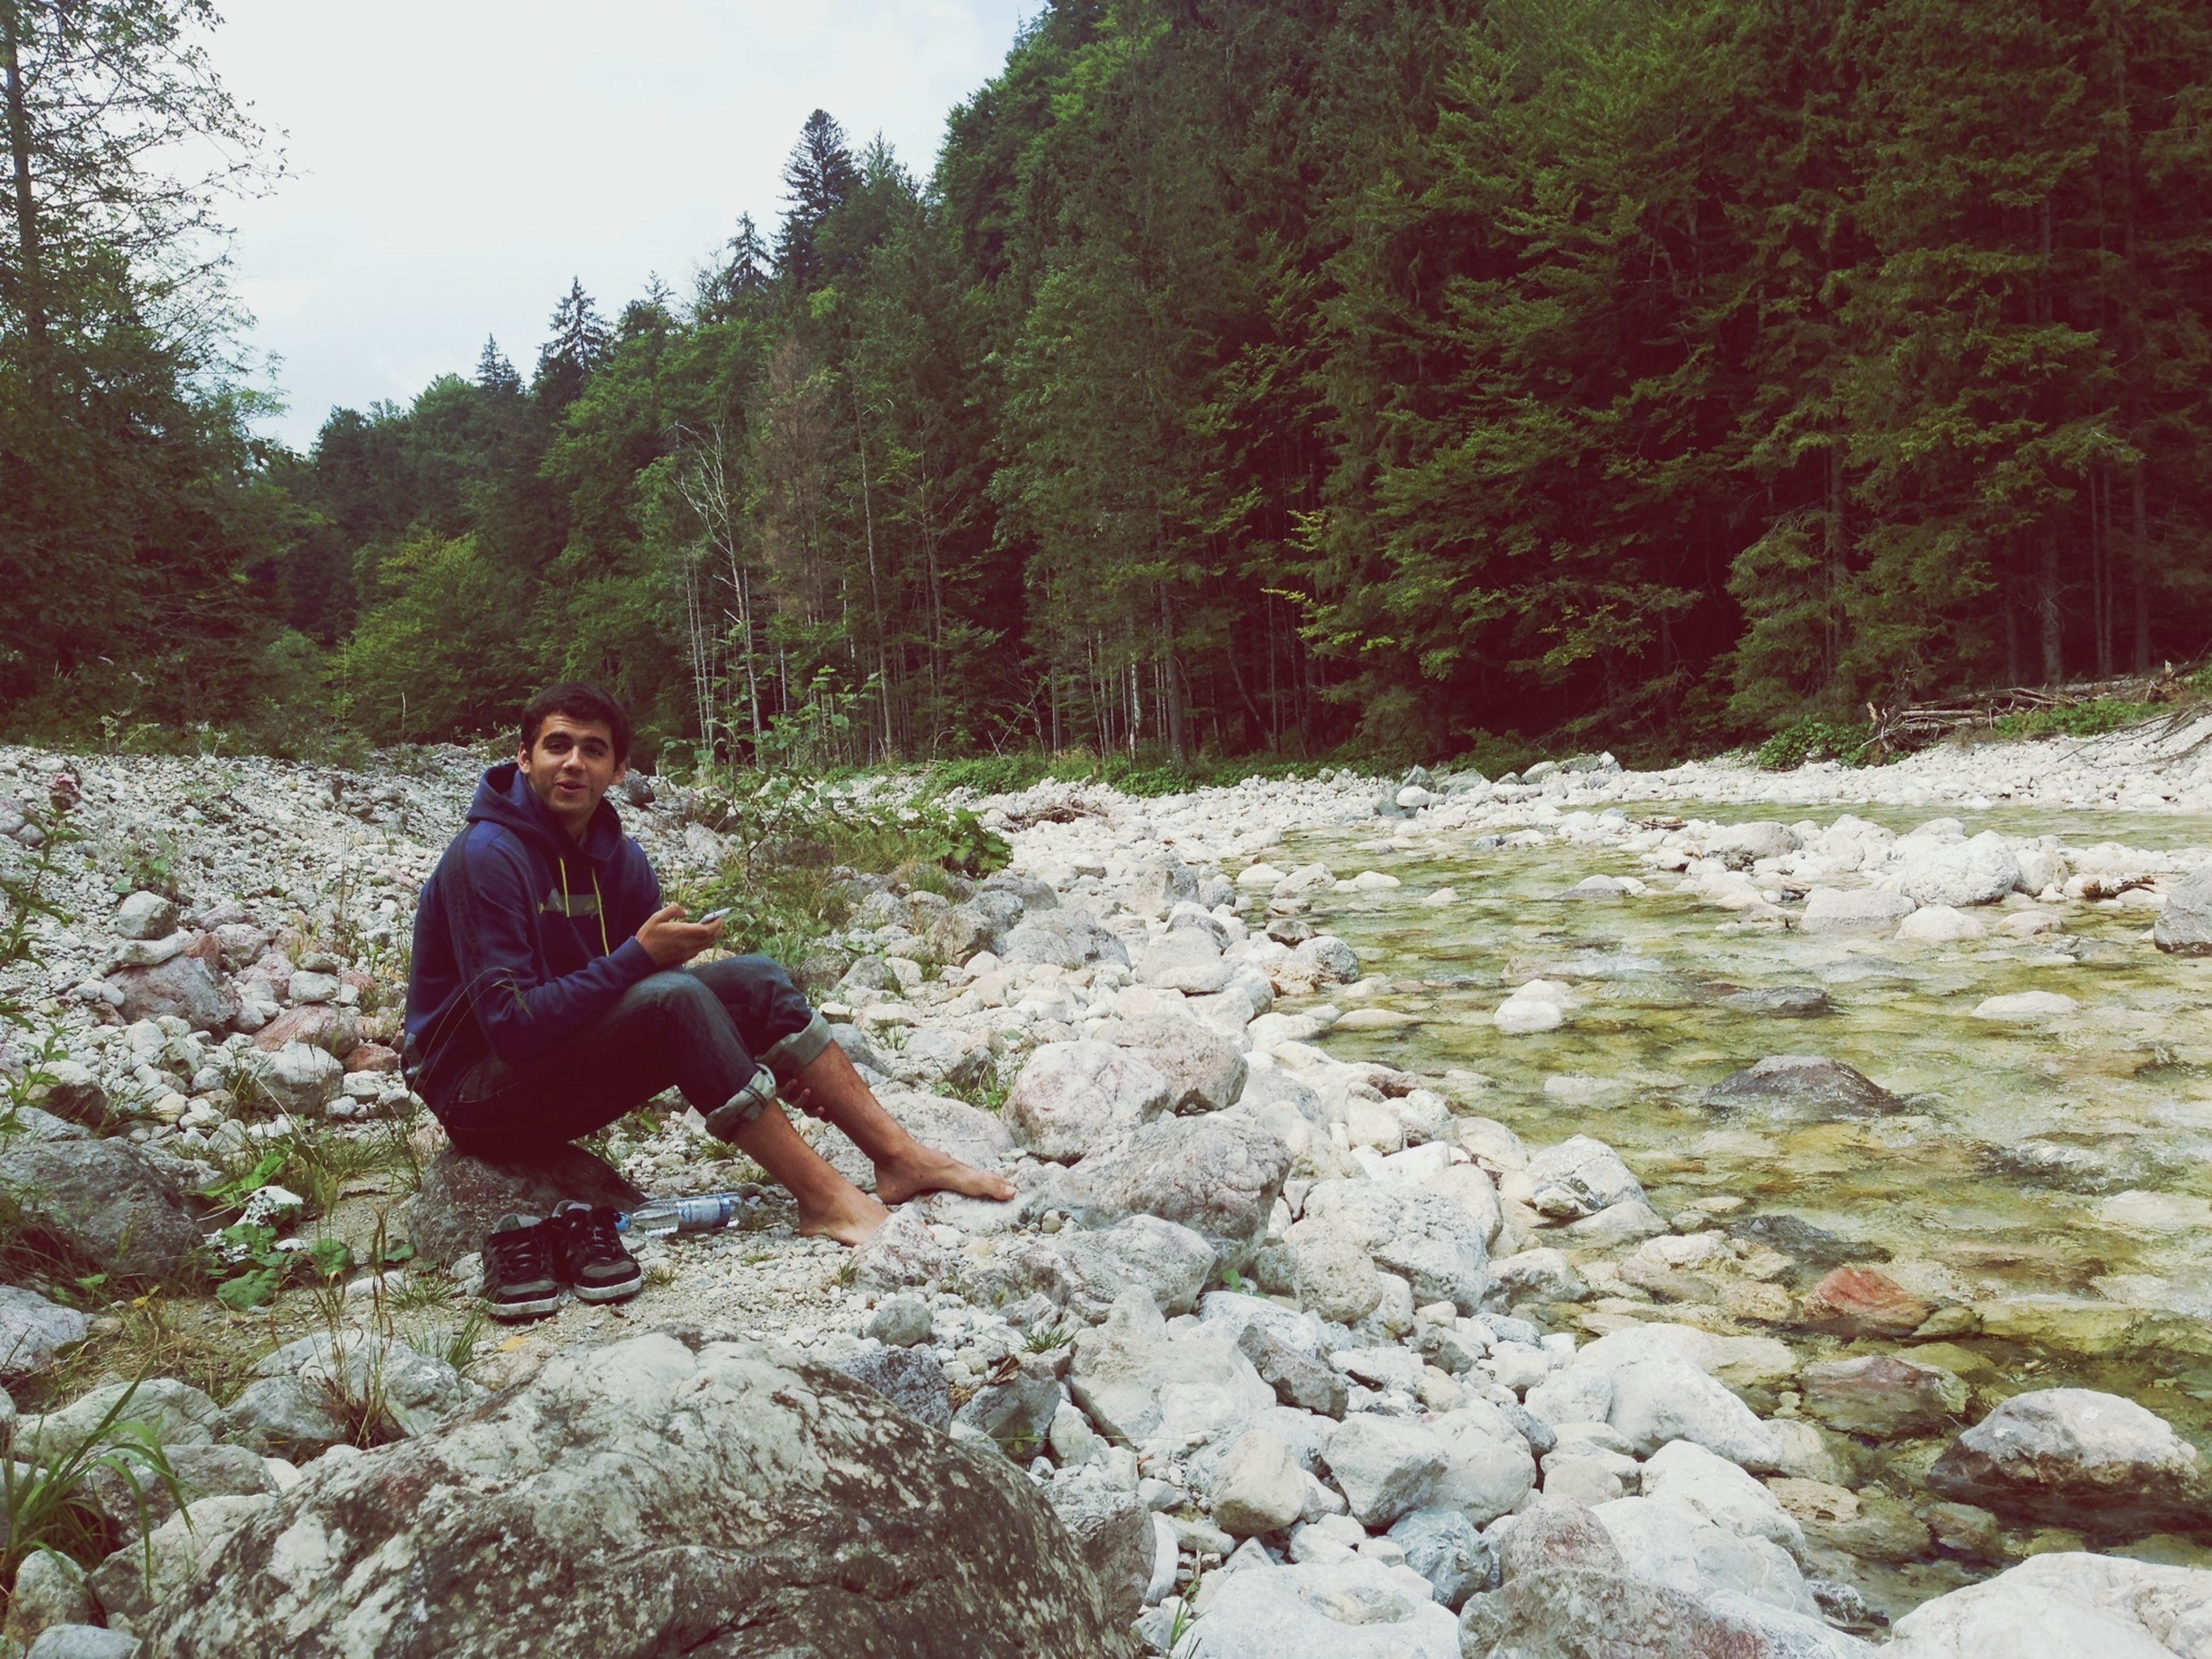 lifestyles, leisure activity, rock - object, casual clothing, full length, young adult, person, tree, standing, sitting, nature, young men, three quarter length, portrait, tranquility, looking at camera, rock